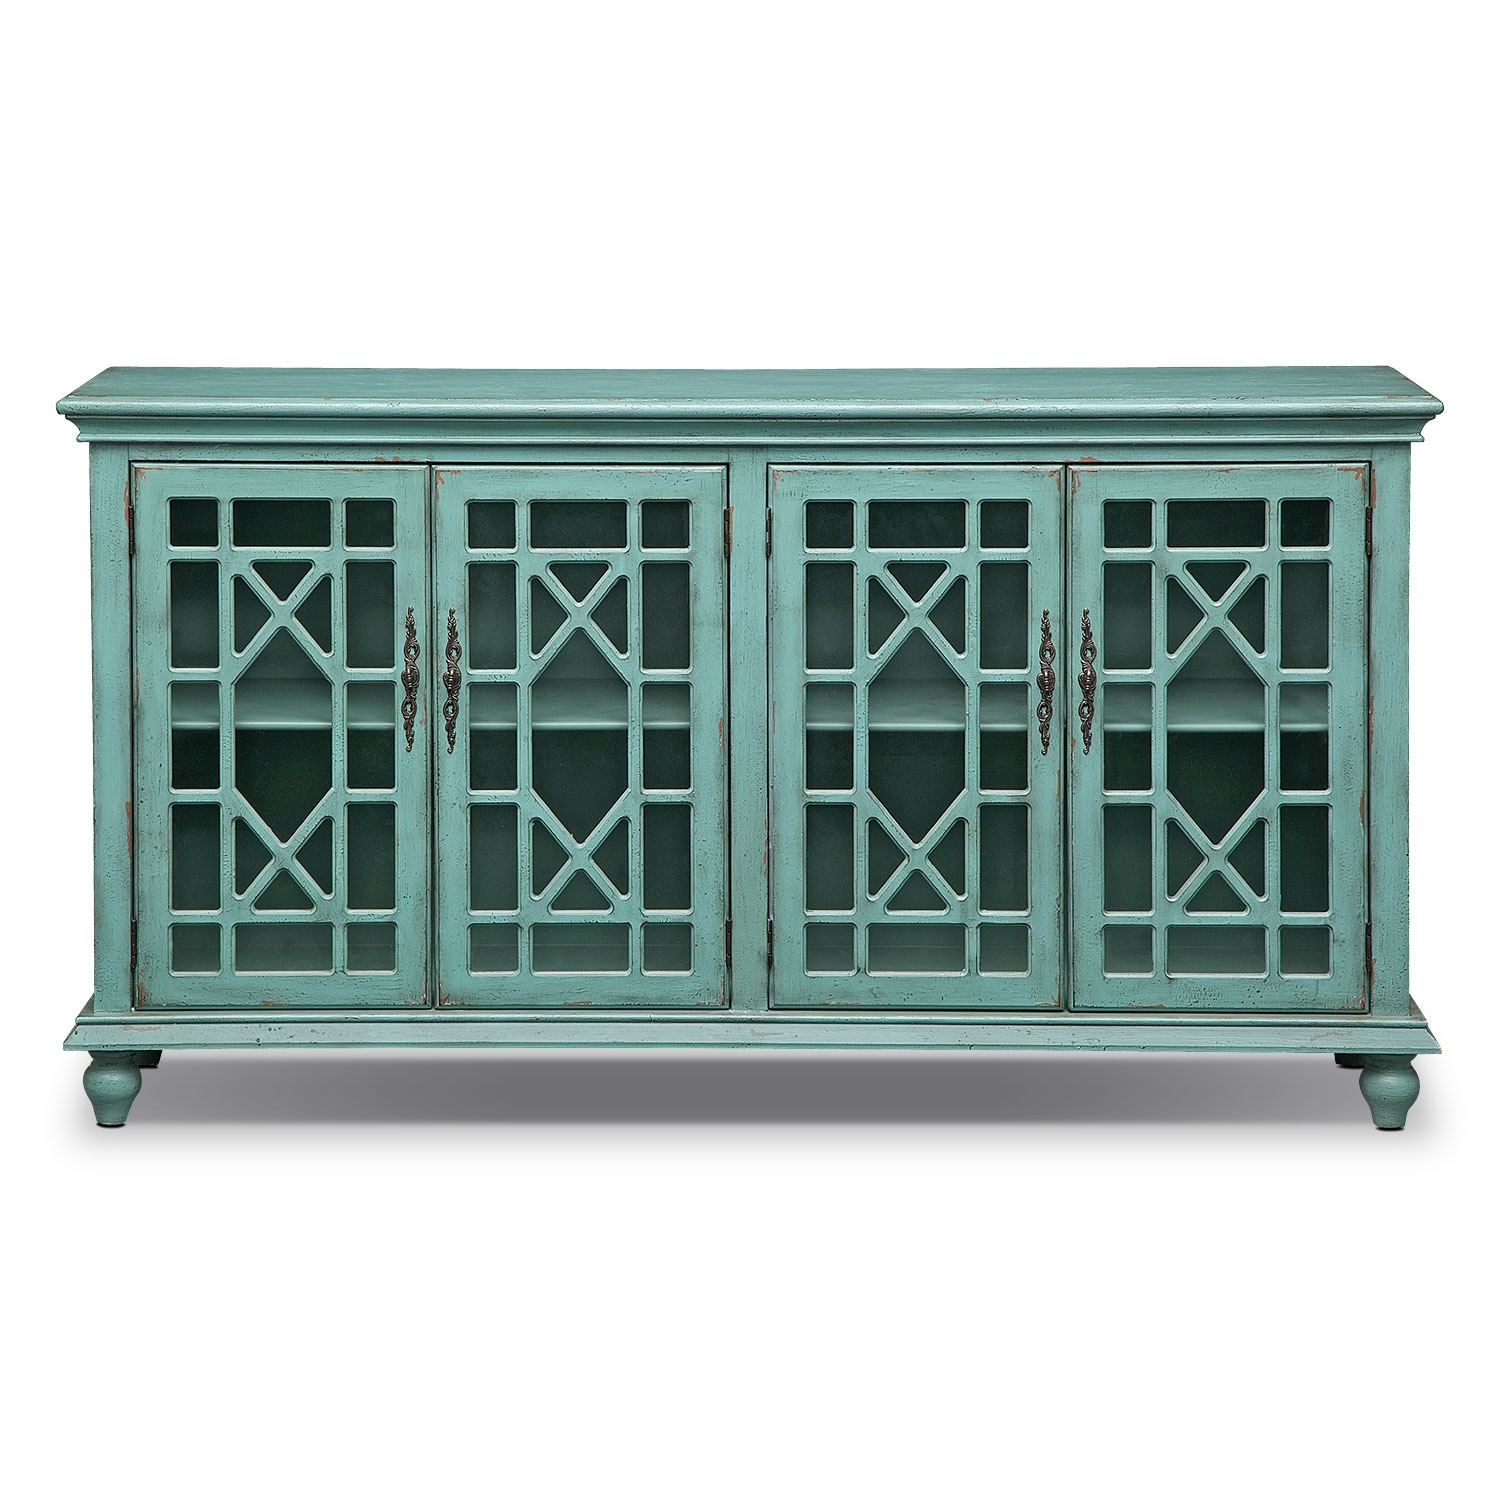 Grenoble Media Credenza Teal Value City Furniture : 402372 from www.valuecityfurniture.com size 1500 x 1500 jpeg 525kB